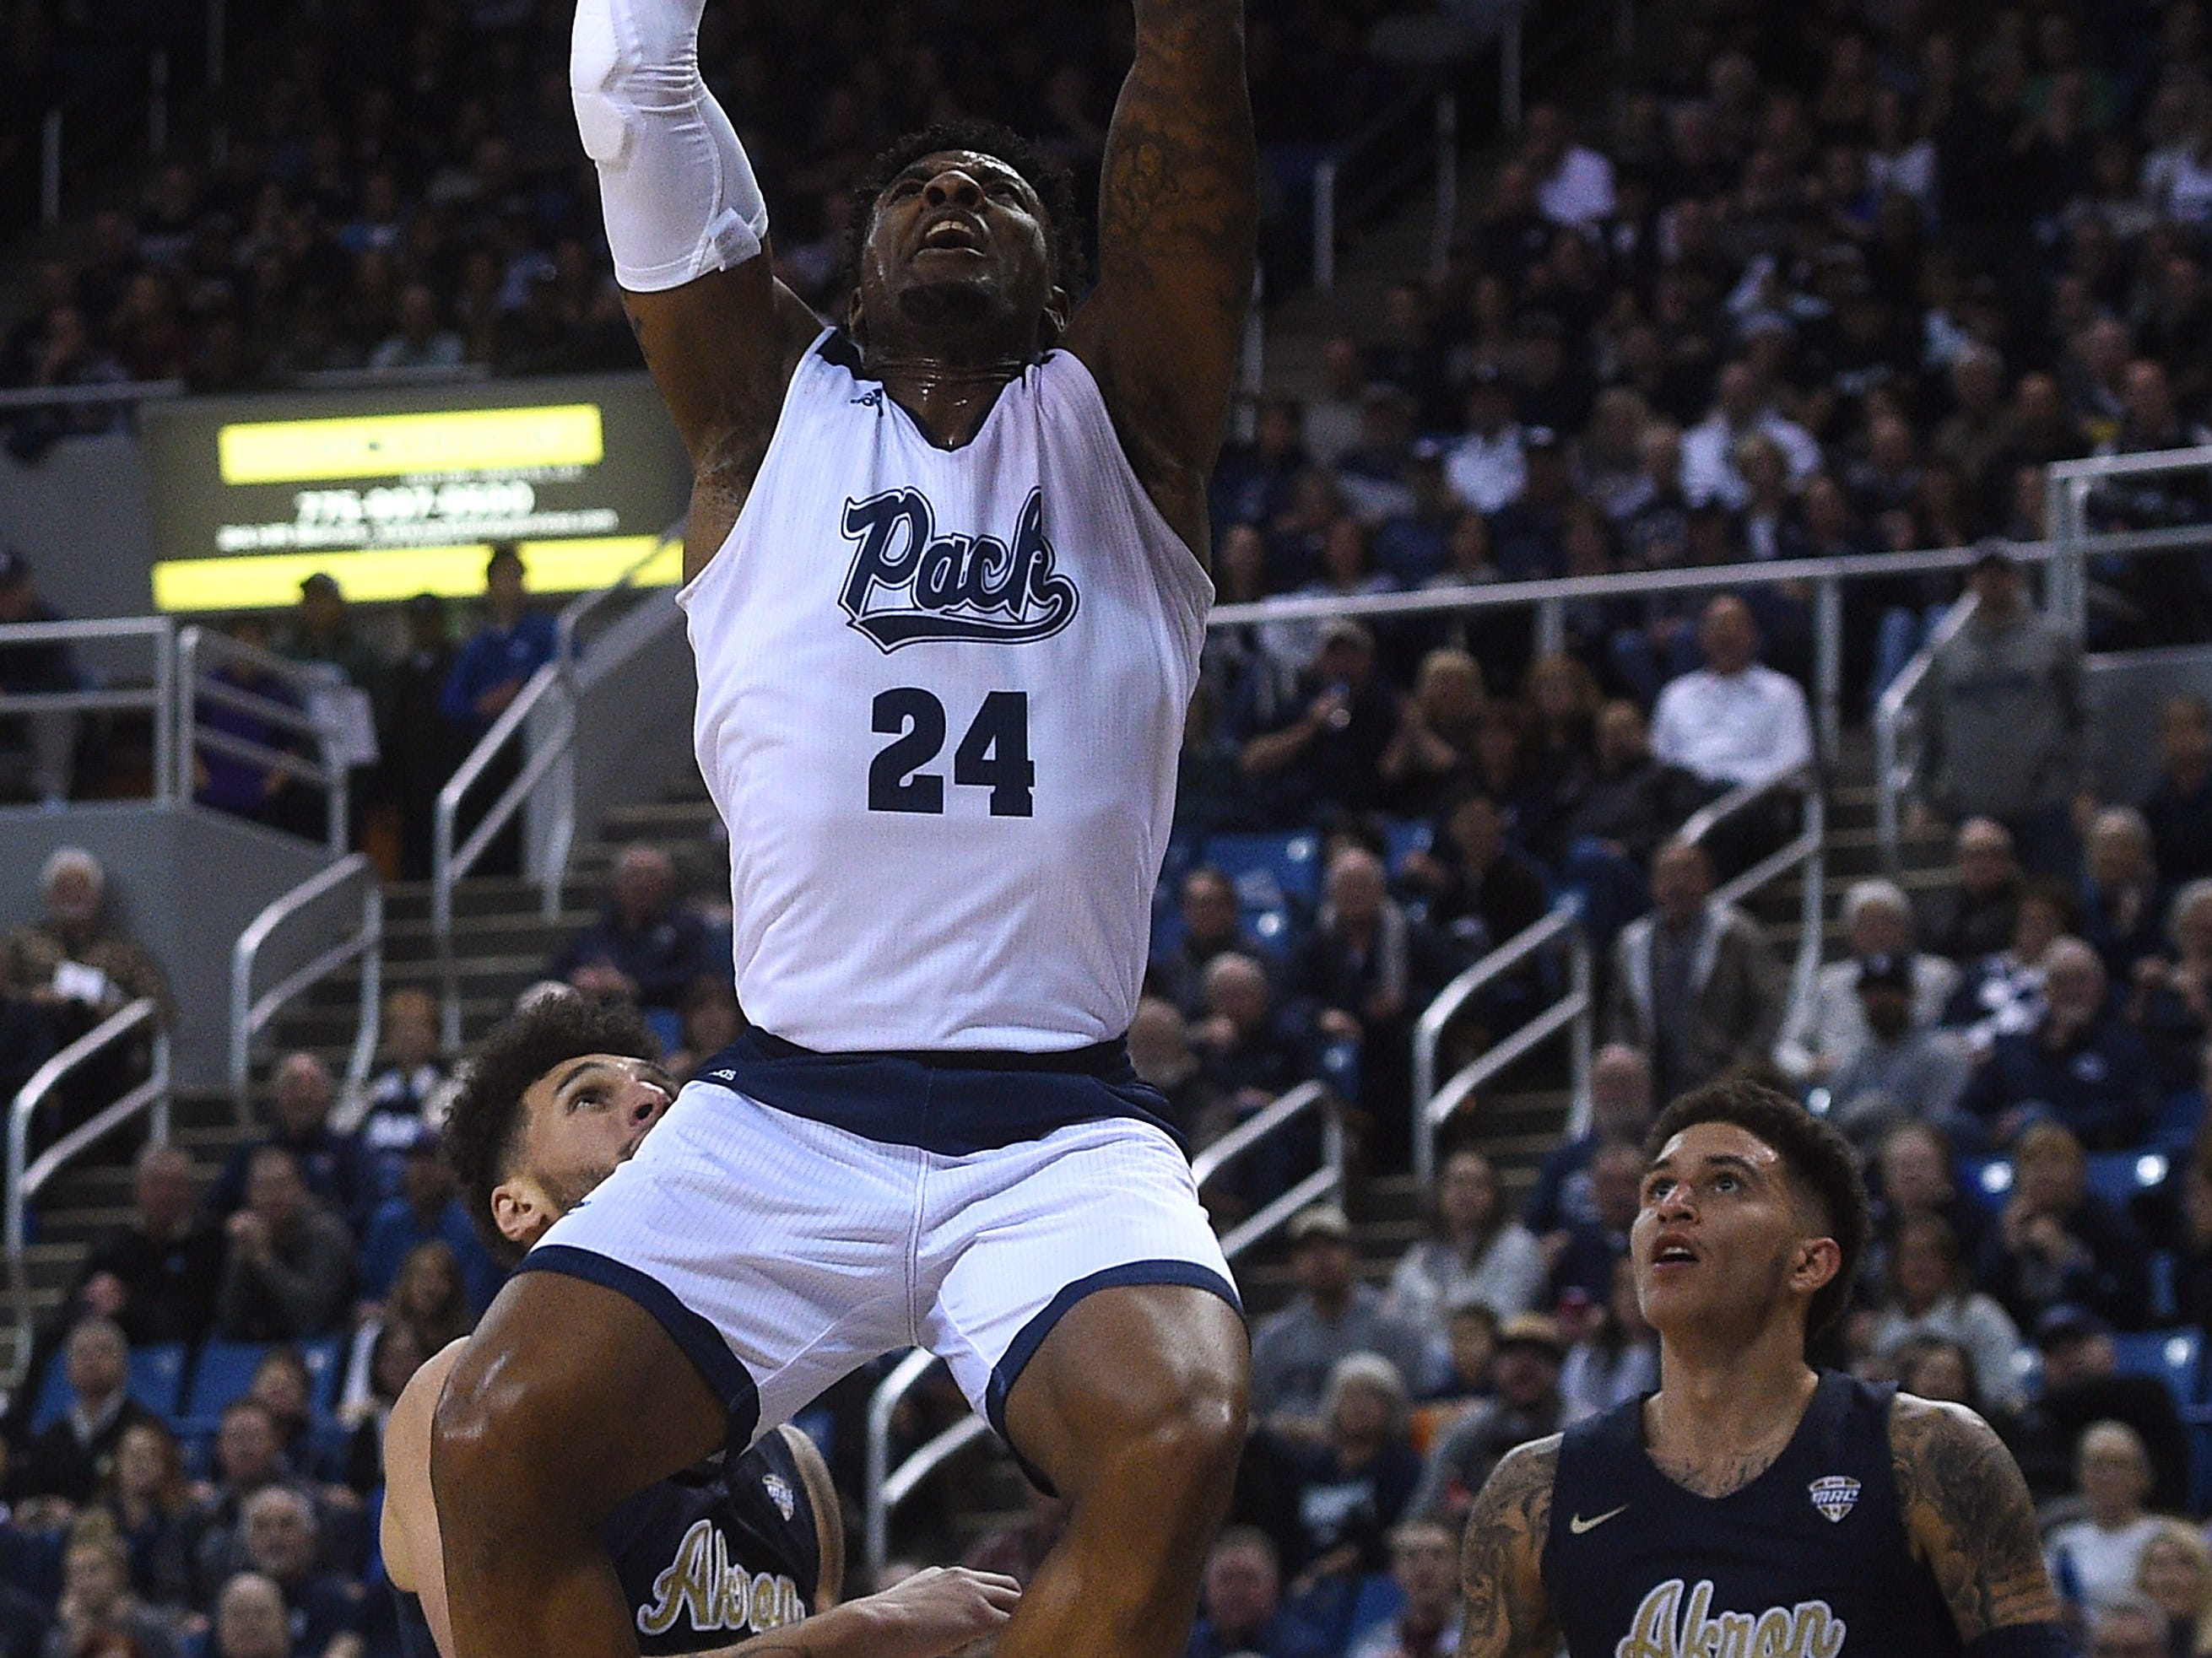 Nevada's Jordan Caroline (24) dunks while taking on Akron during their basketball game at Lawlor Events Center in Reno on Dec. 22, 2018.